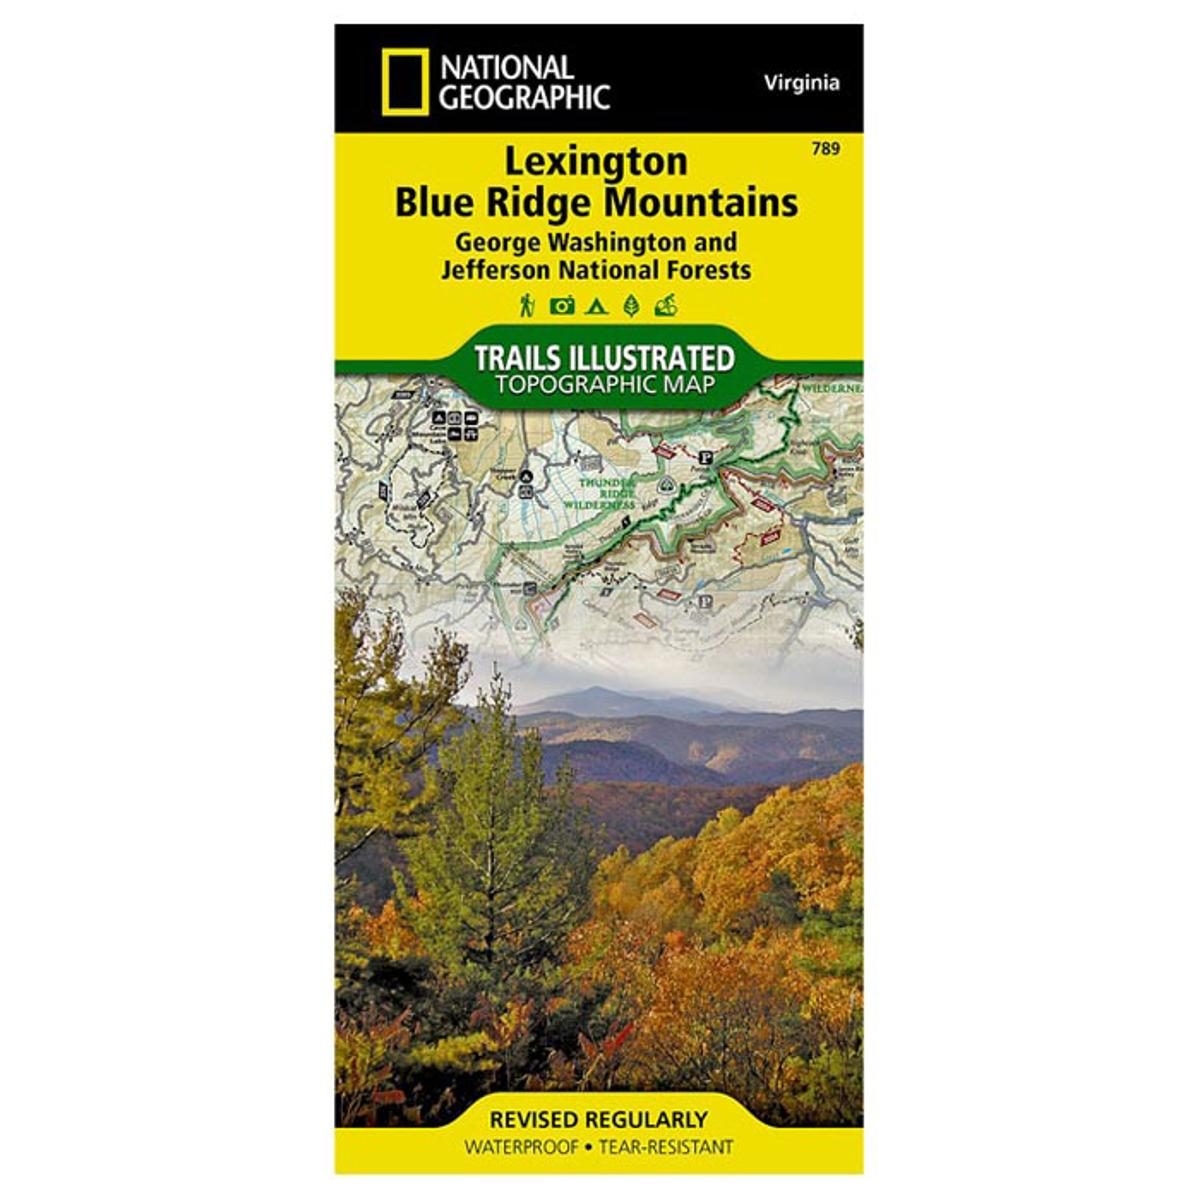 Details About National Geographic Lexington Blue Ridge Mountains 789 By Virginia 789